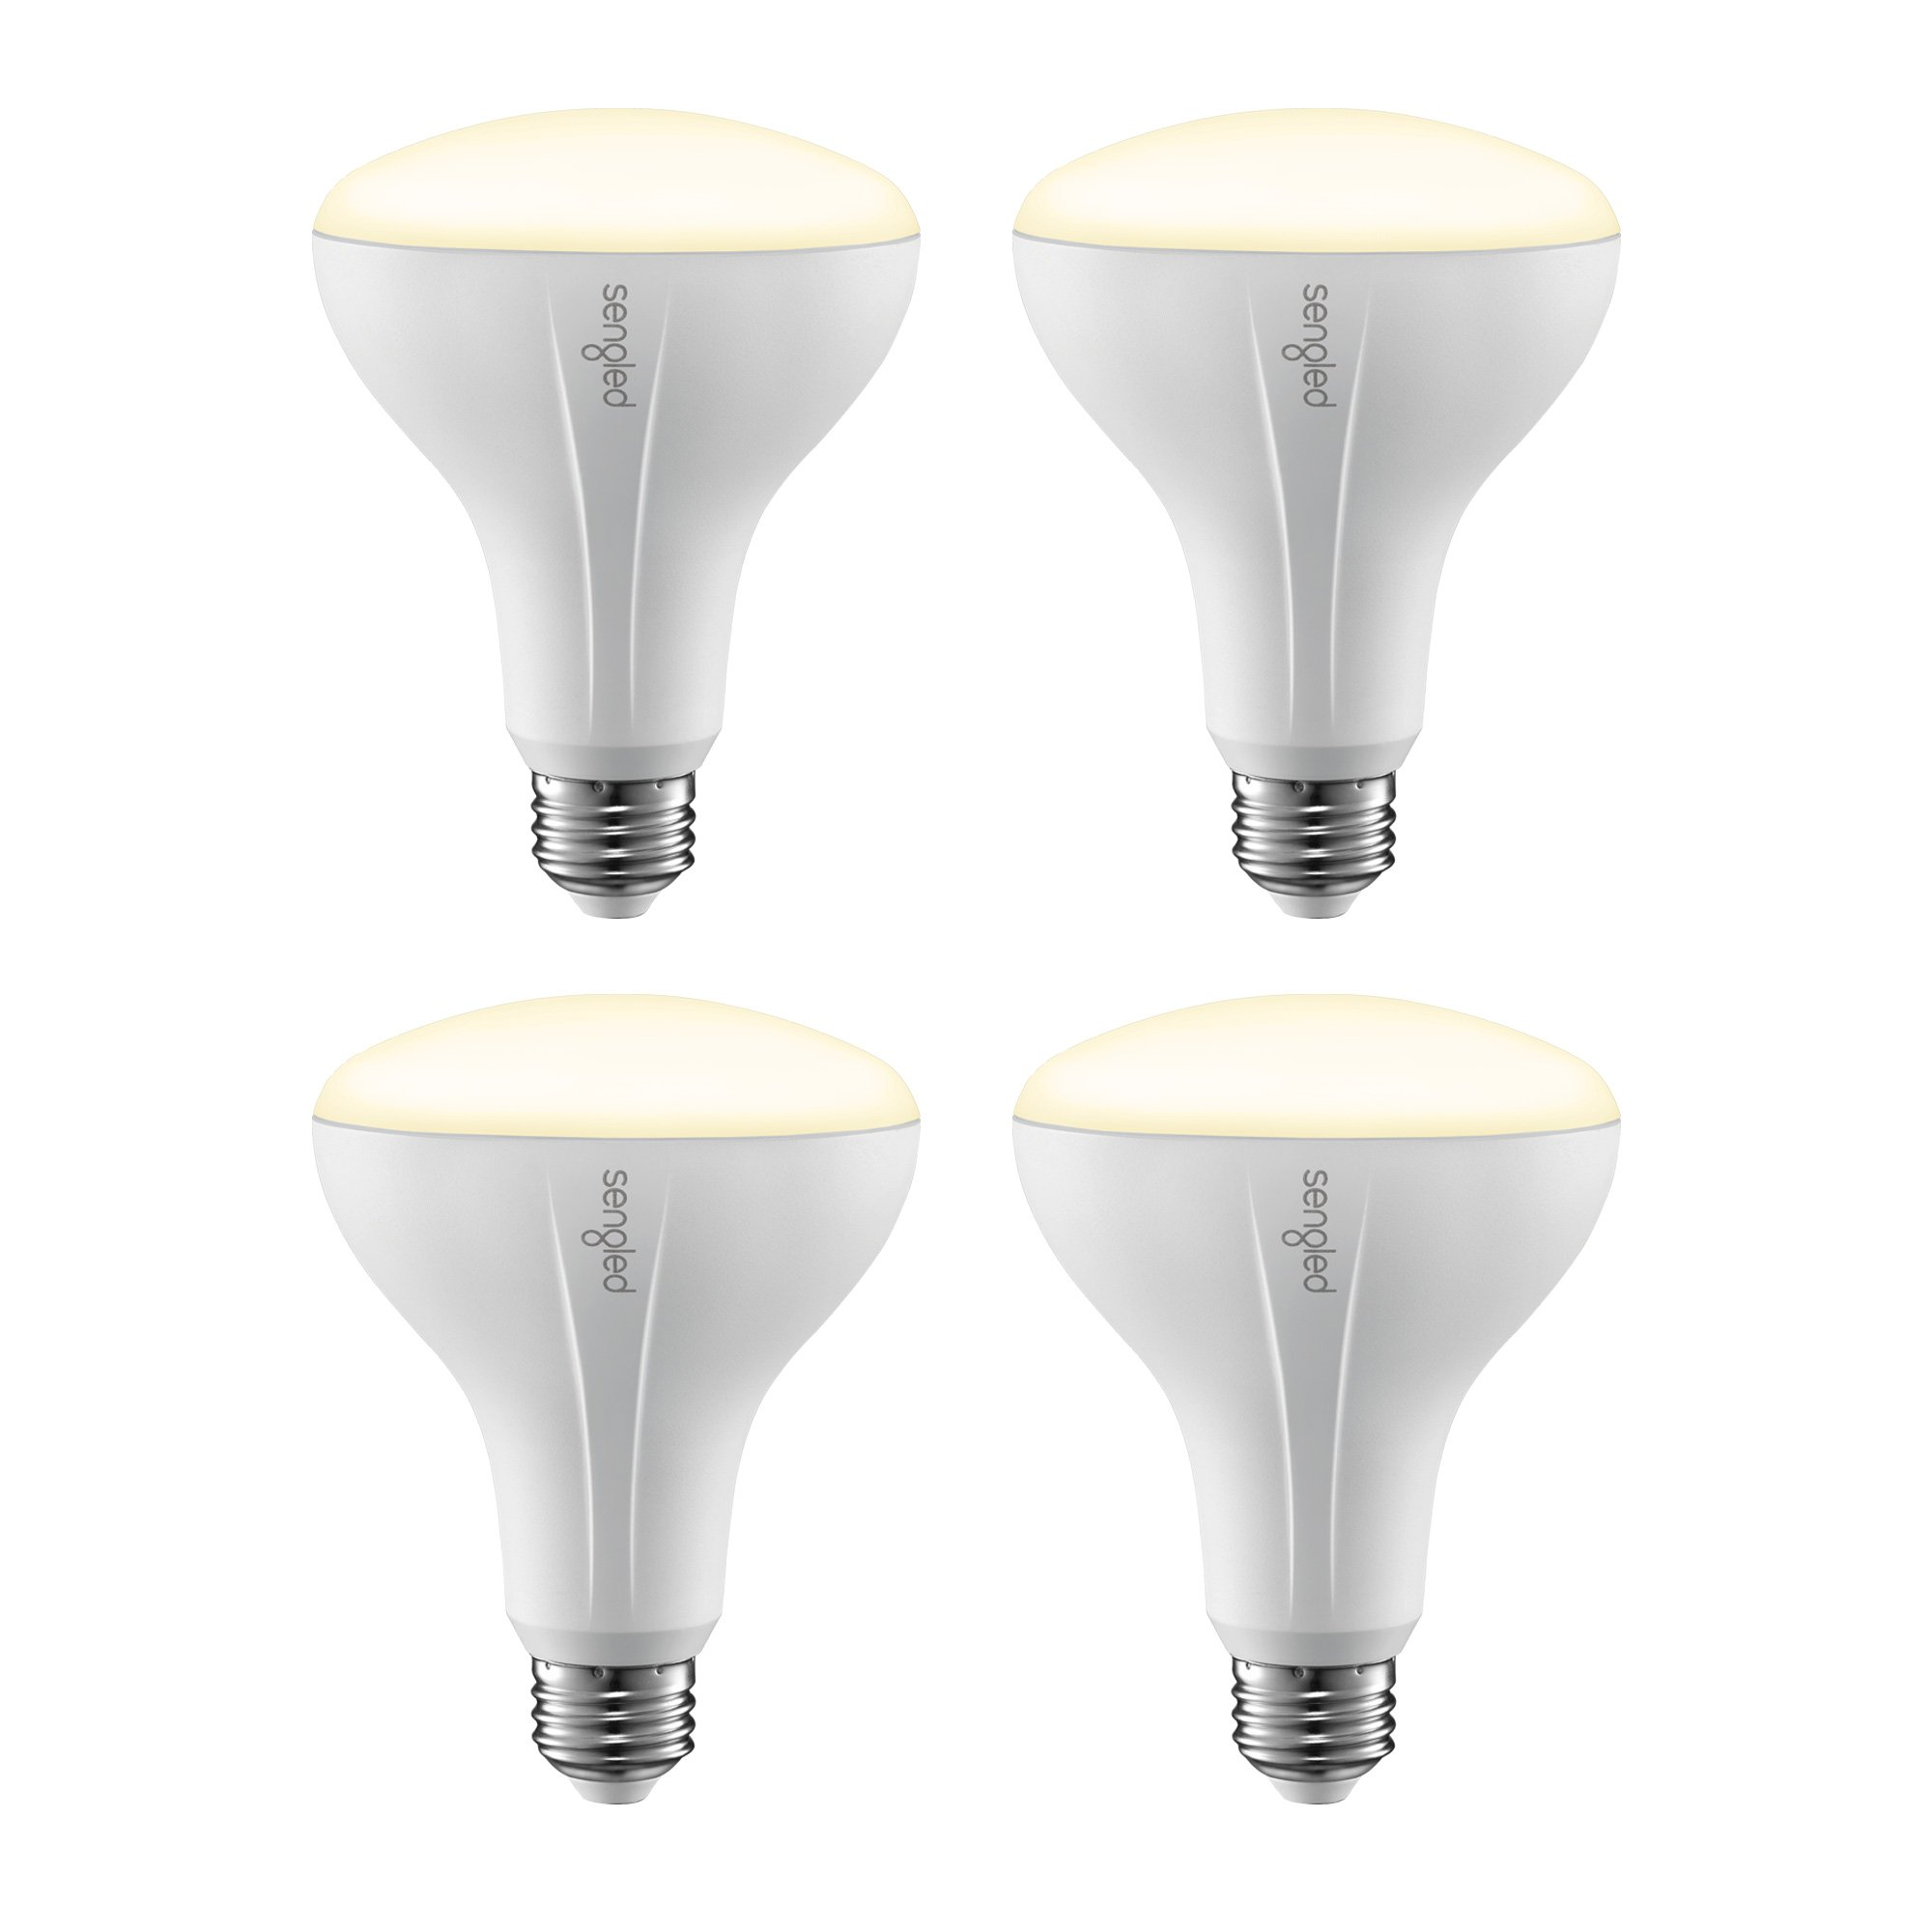 Sengled Element Classic Smart LED Light Bulb (Hub Required), BR30 Dimmable LED Light Soft White 2700K 65W Equivalent, Works with Alexa/Echo Plus/SmartThings/Google Assistant, 4 Pack